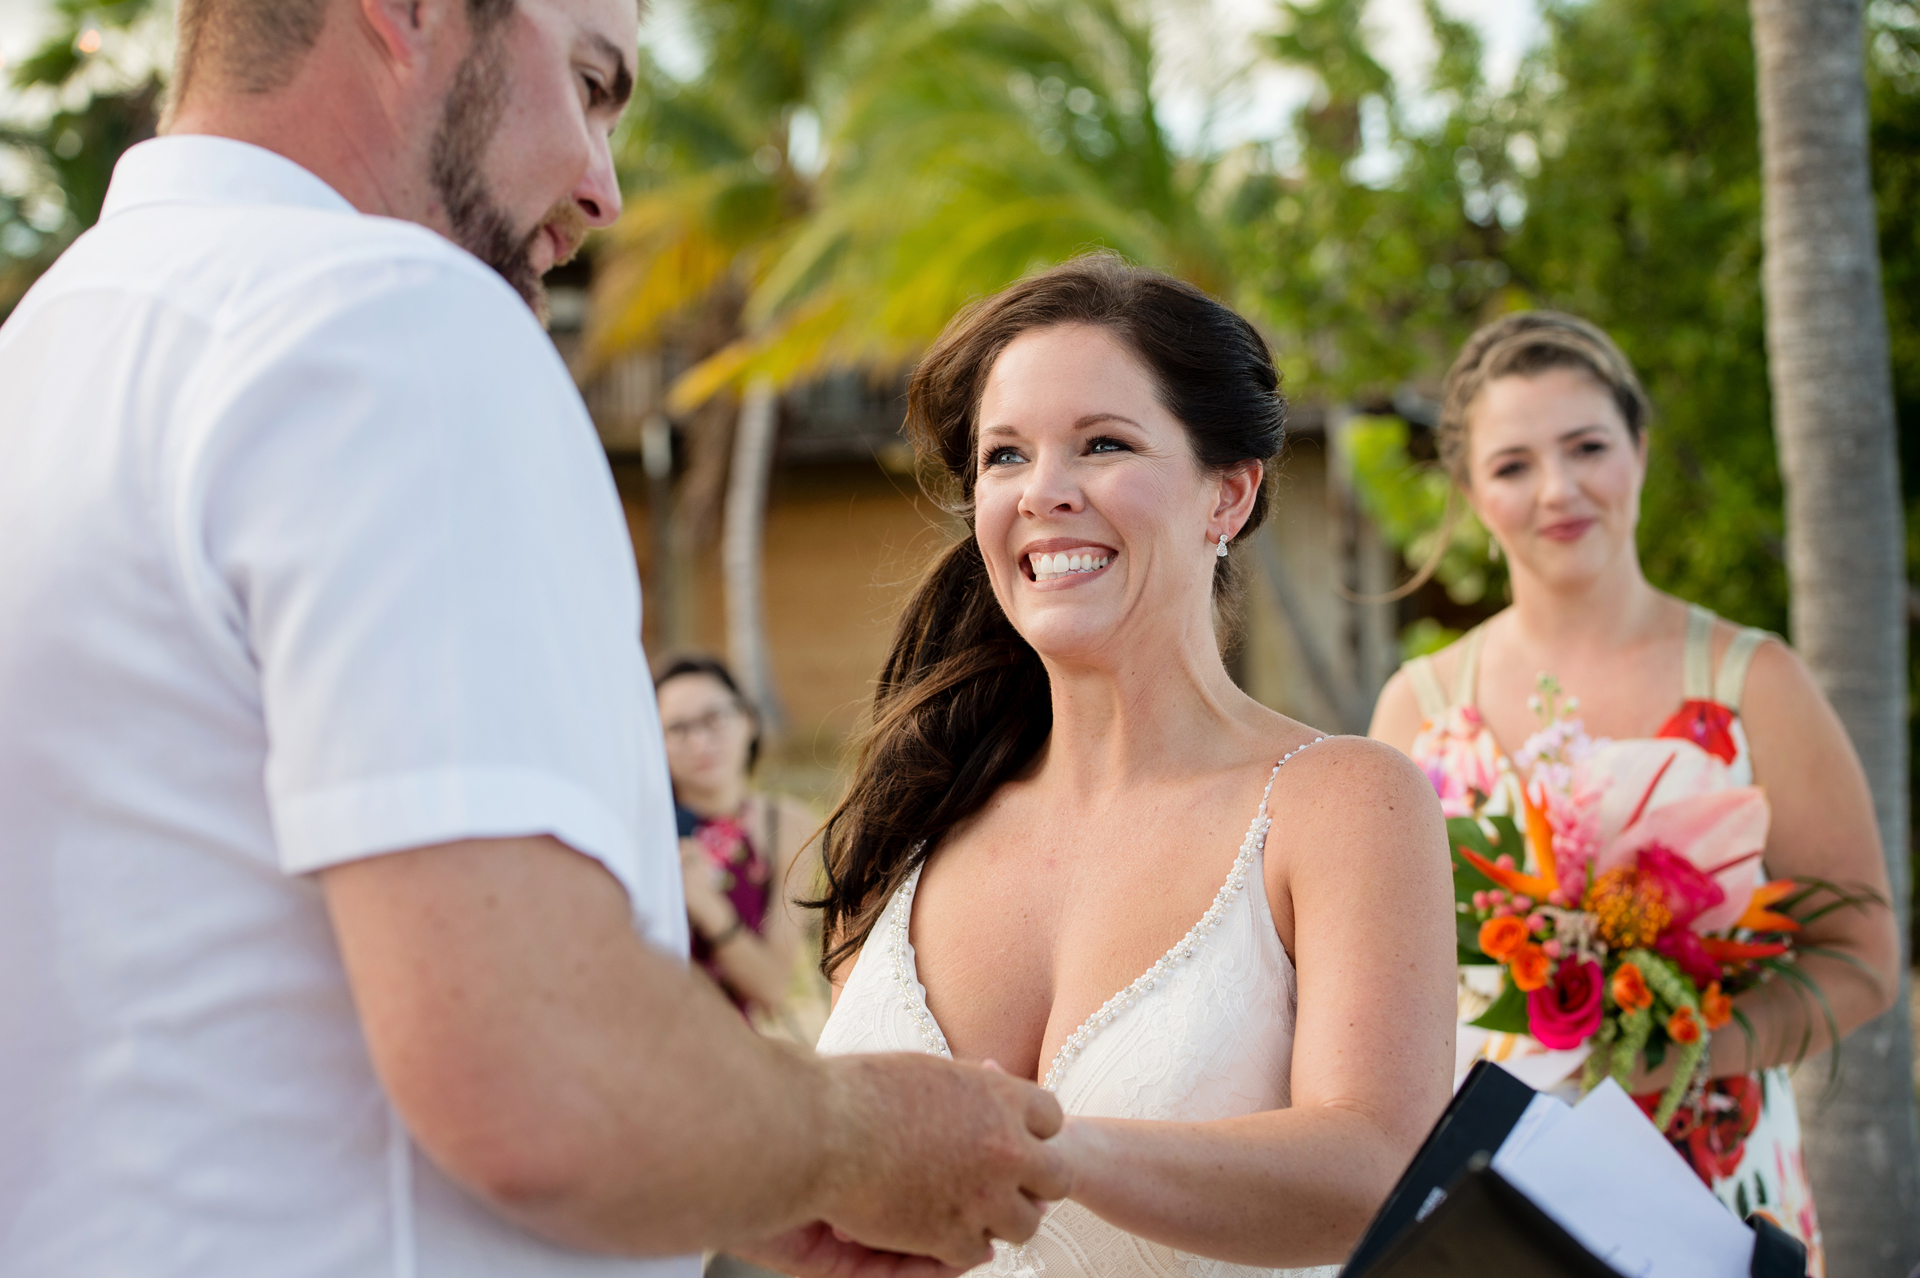 Beach Wedding Elopement Ceremony Photographer - Bride and Groom in Florida Keys  | The bride's eyes sparkle as she beams up at her new husband